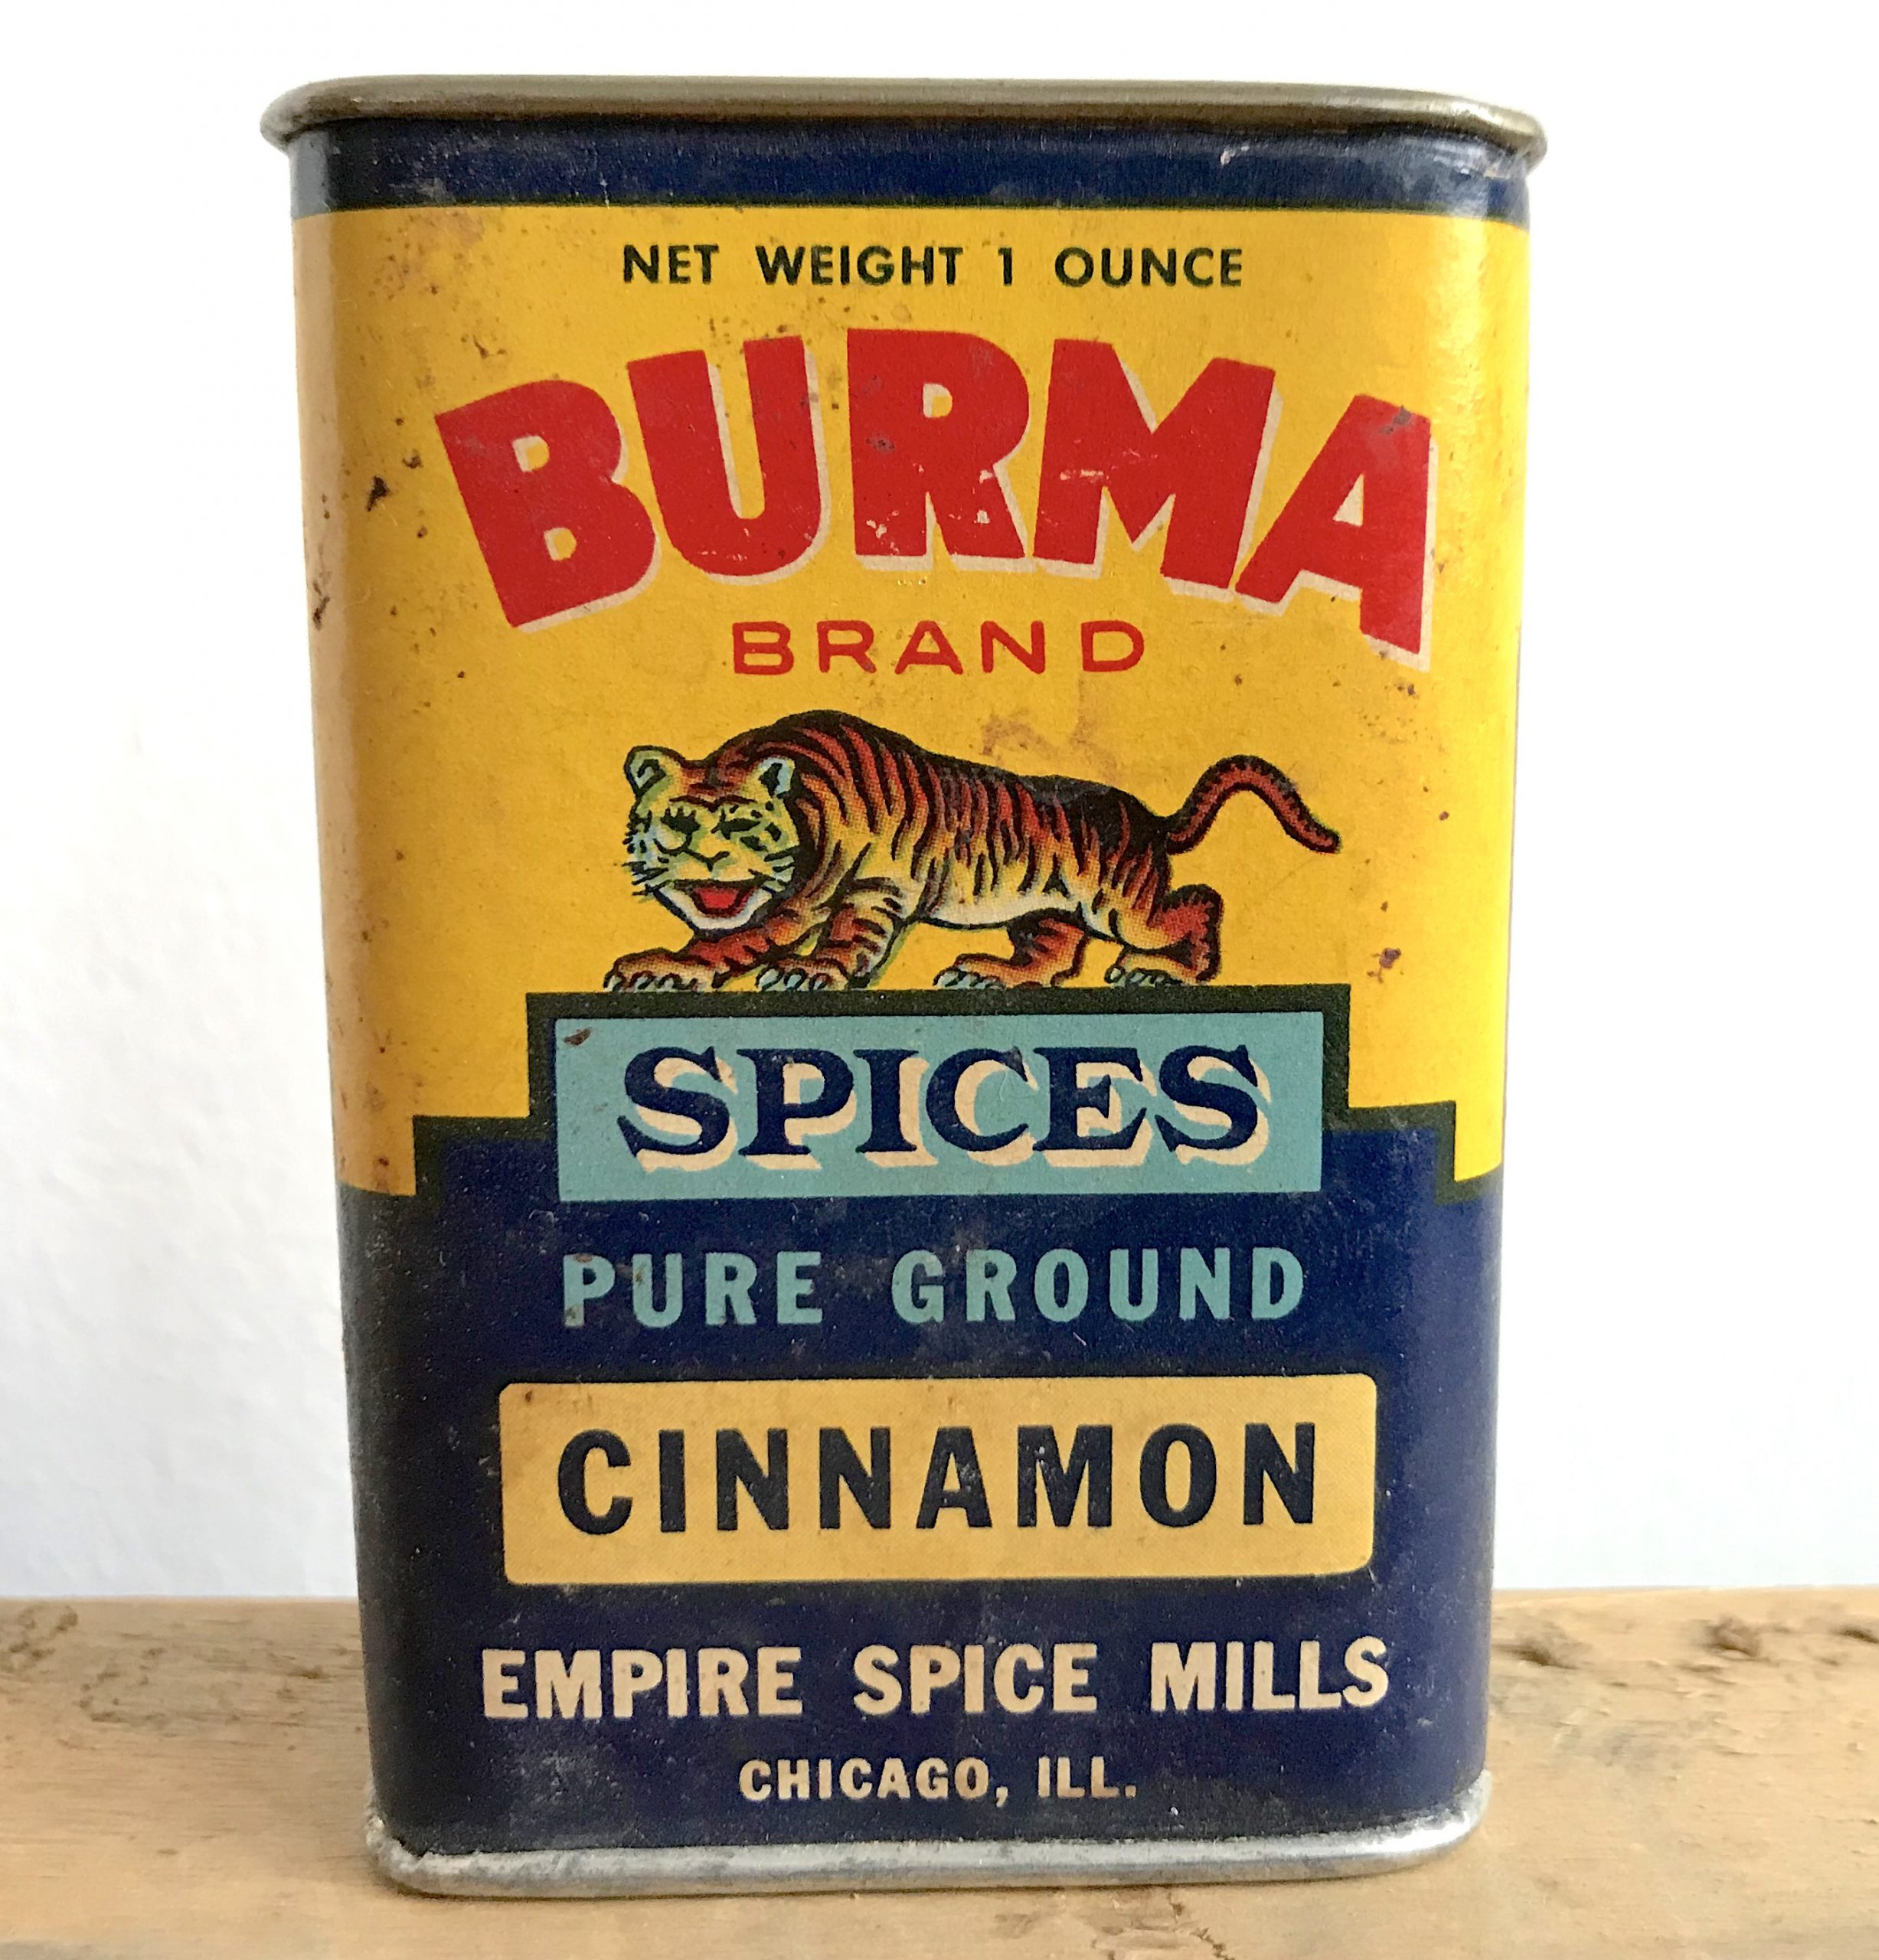 Empire Spice Mills MFG Co., est. 1937